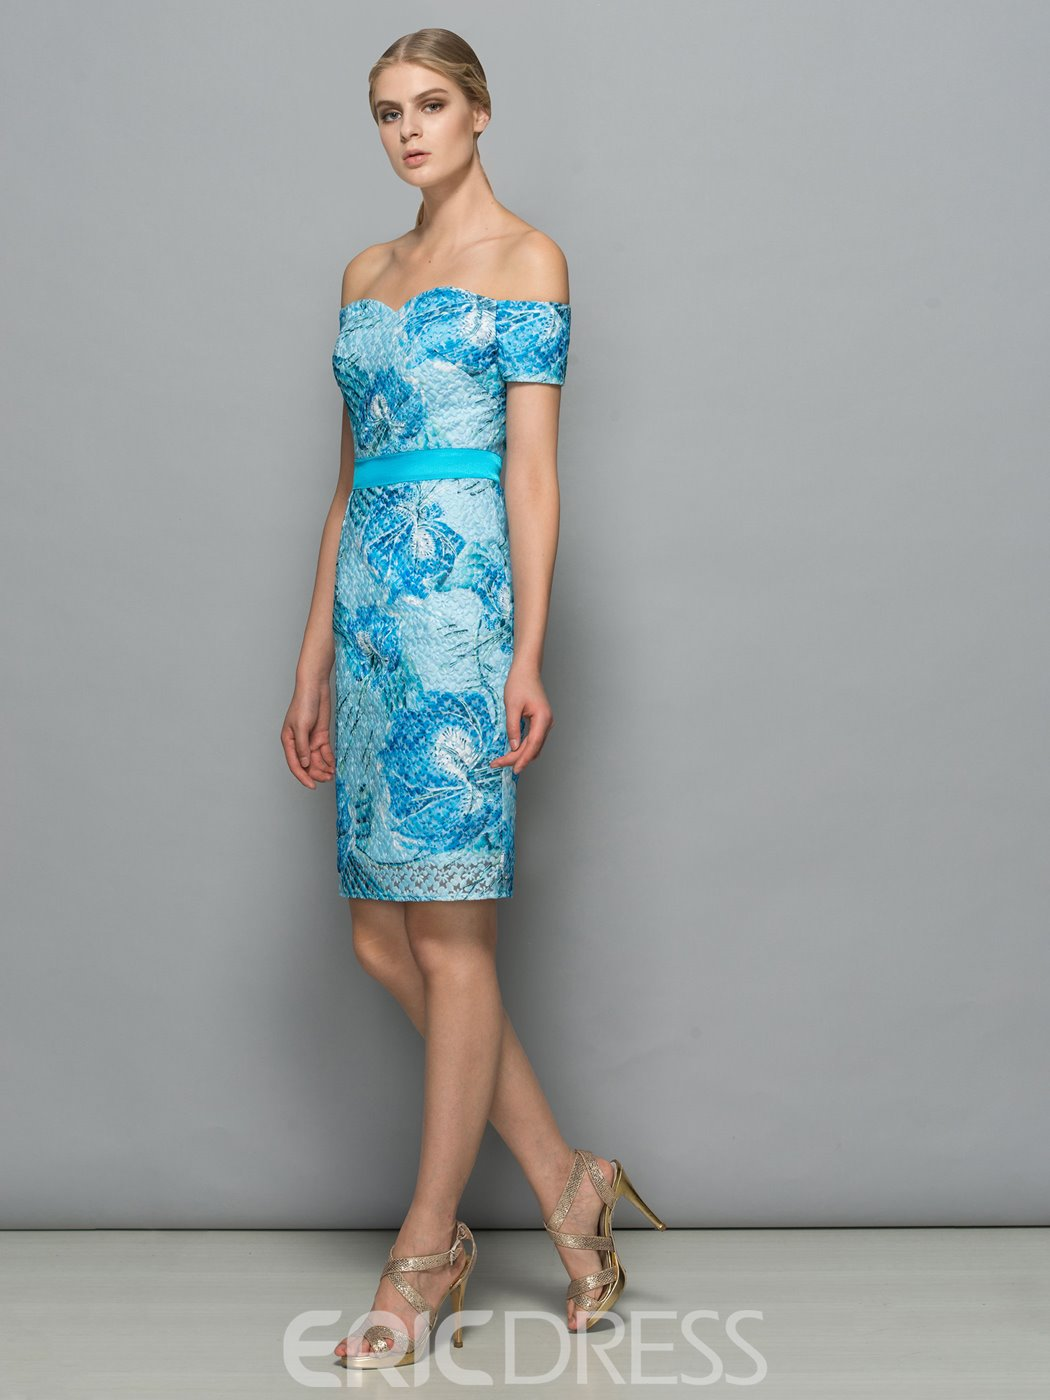 Ericdress Off-the-Shoulder Sheath Lace Ribbons Short Cocktail Dress